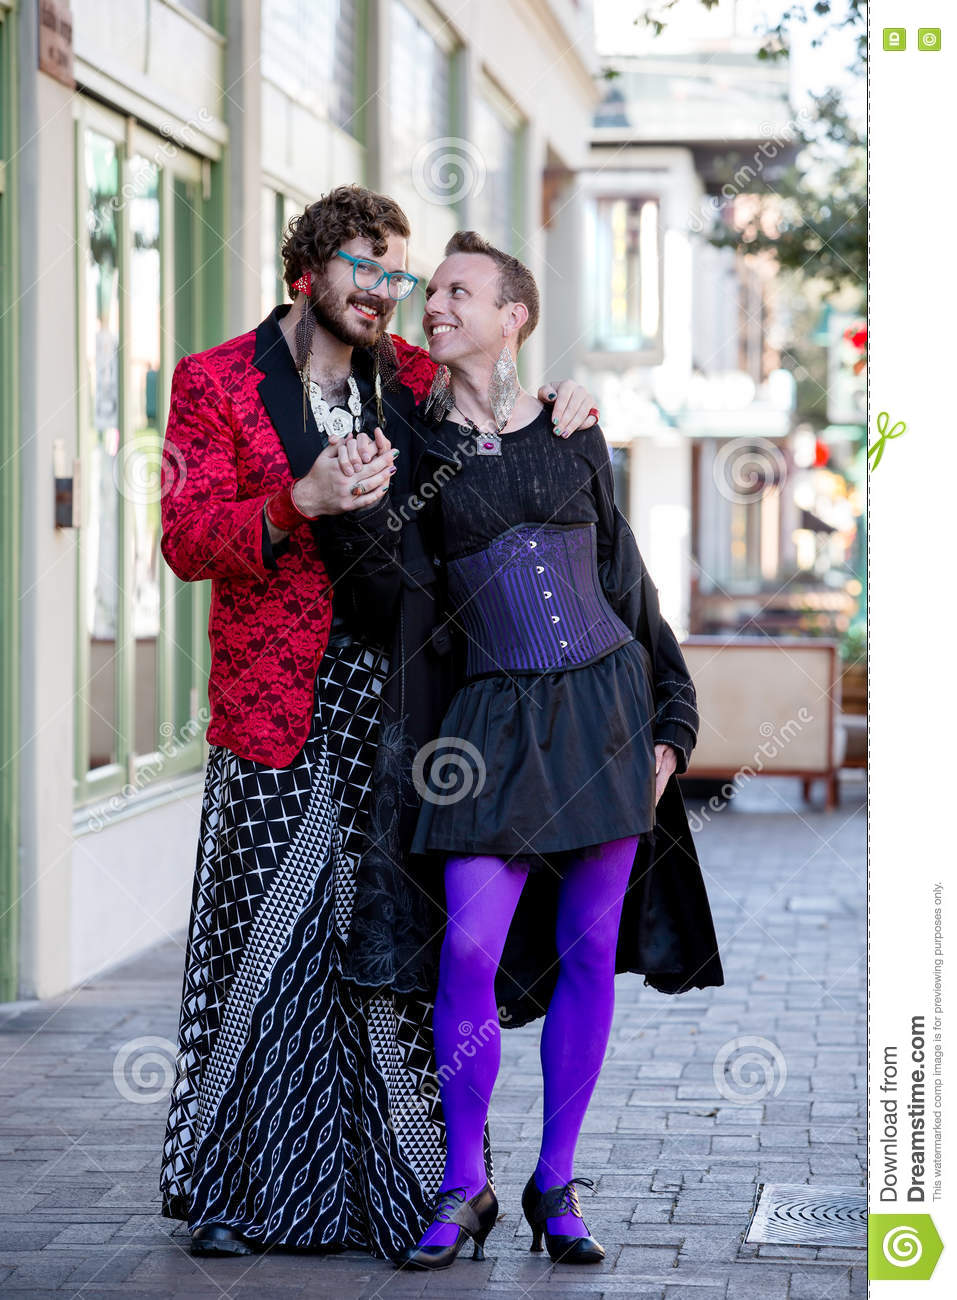 859a6bd32ac Flamboyant Young Gender Fluid Men Stock Image - Image of masculine ...